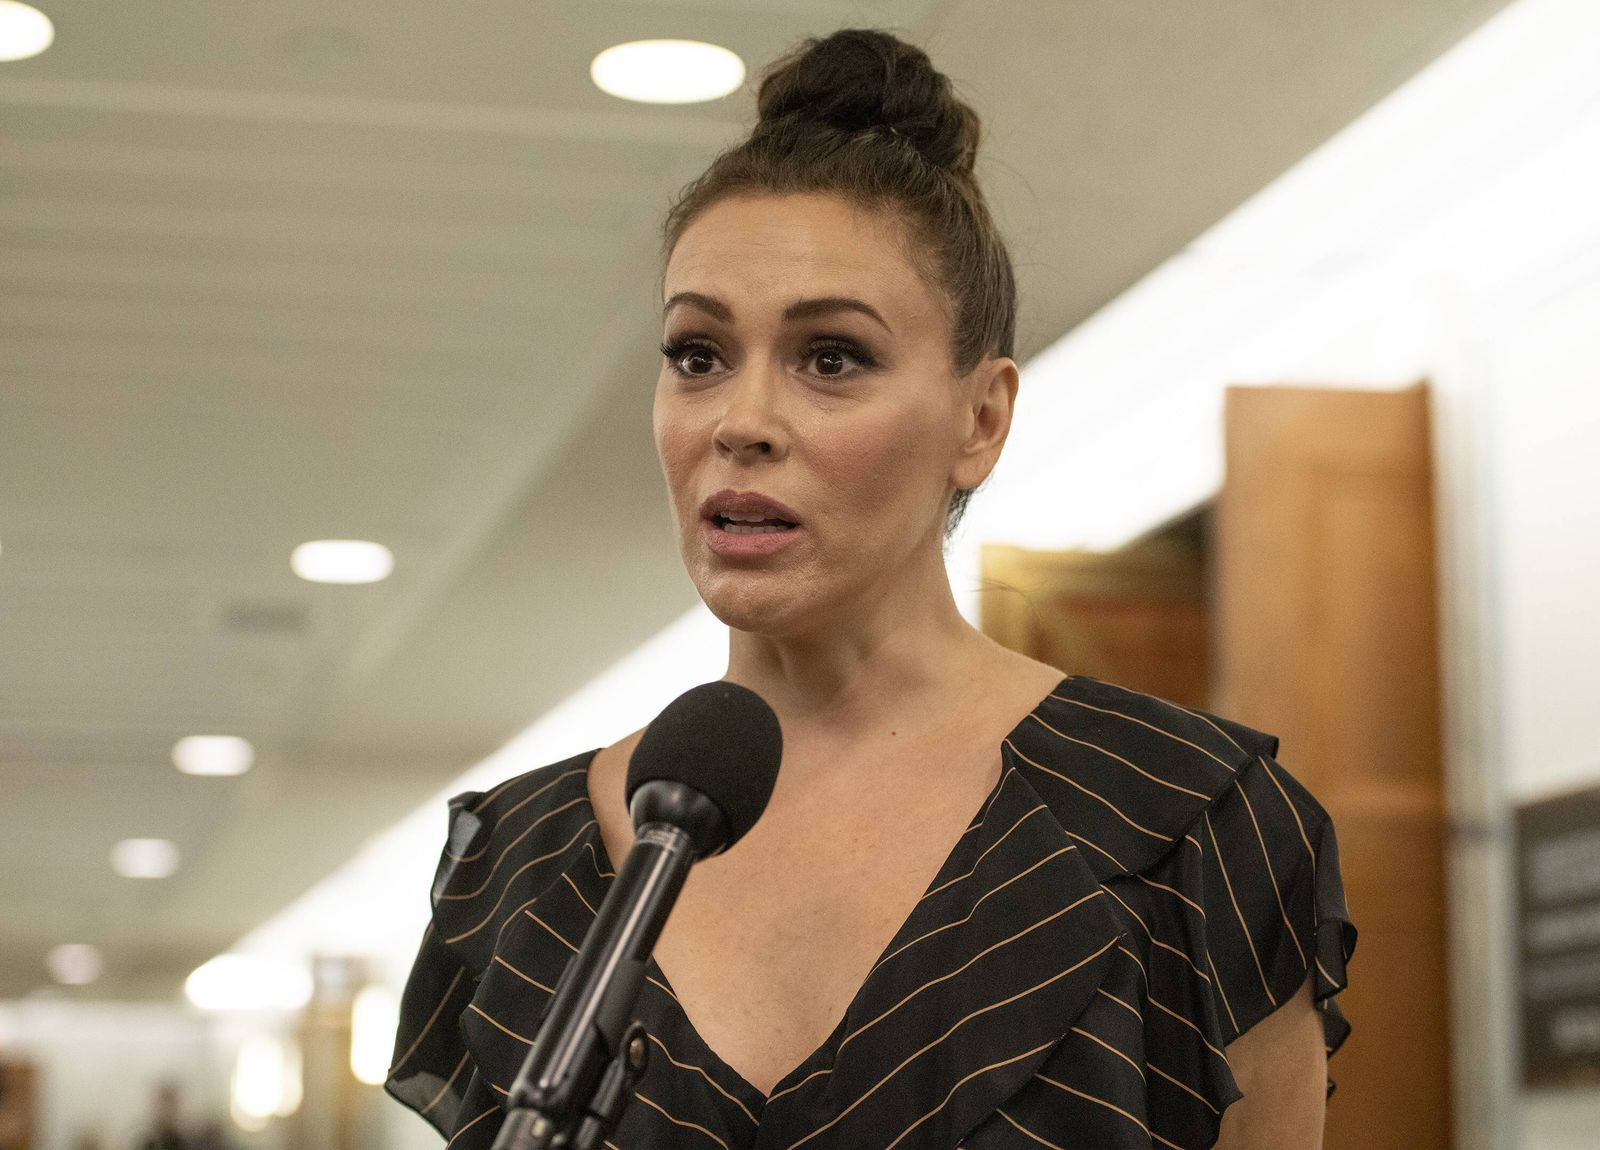 September 27 2018 Washington District of Columbia U S Actress Alyssa Milano is interviewed a